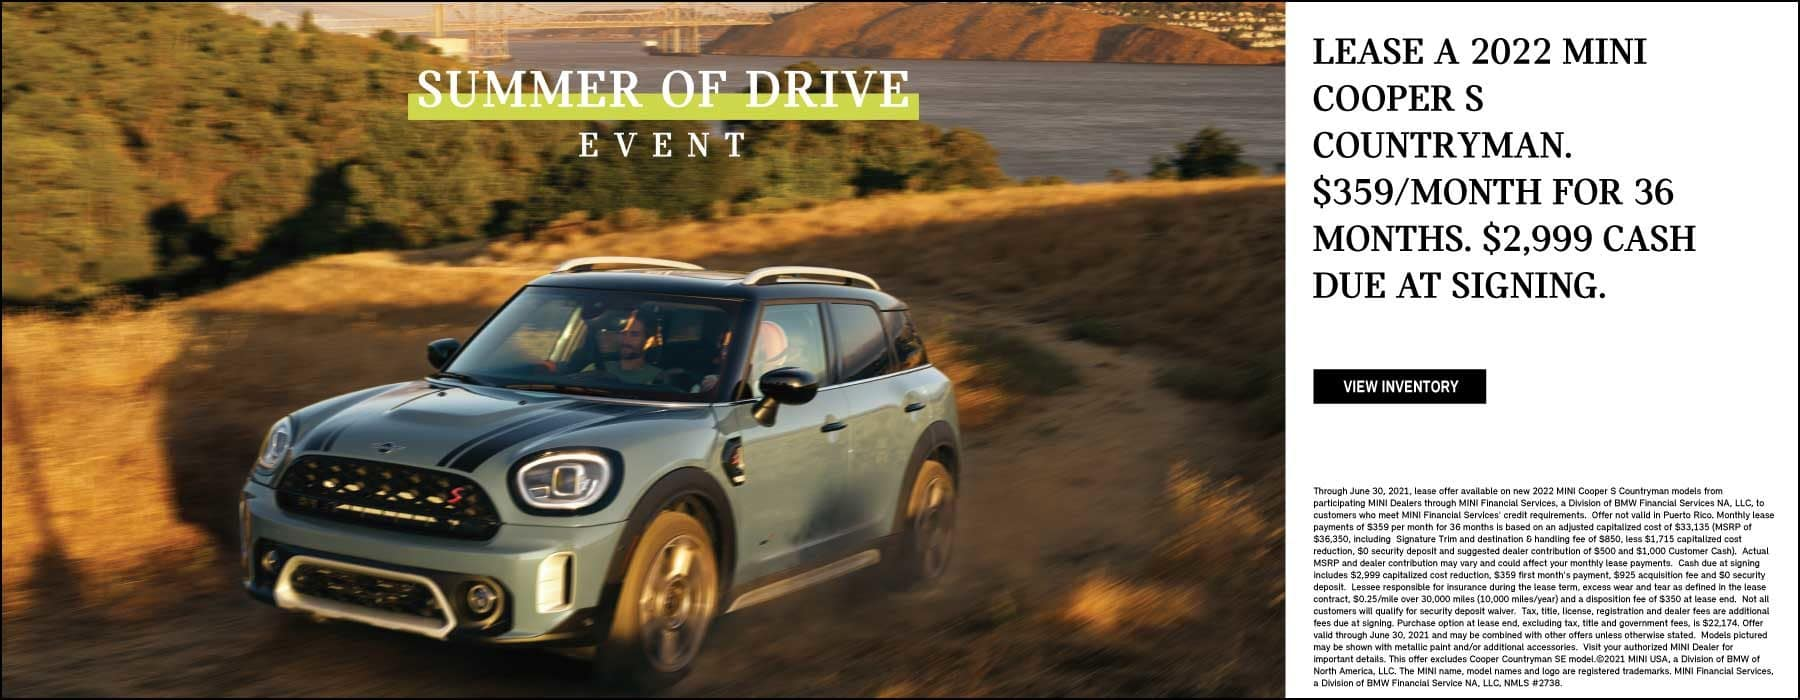 LEASE A 2022 MINI COOPER S COUNTRYMAN FOR $359 A MONTH.